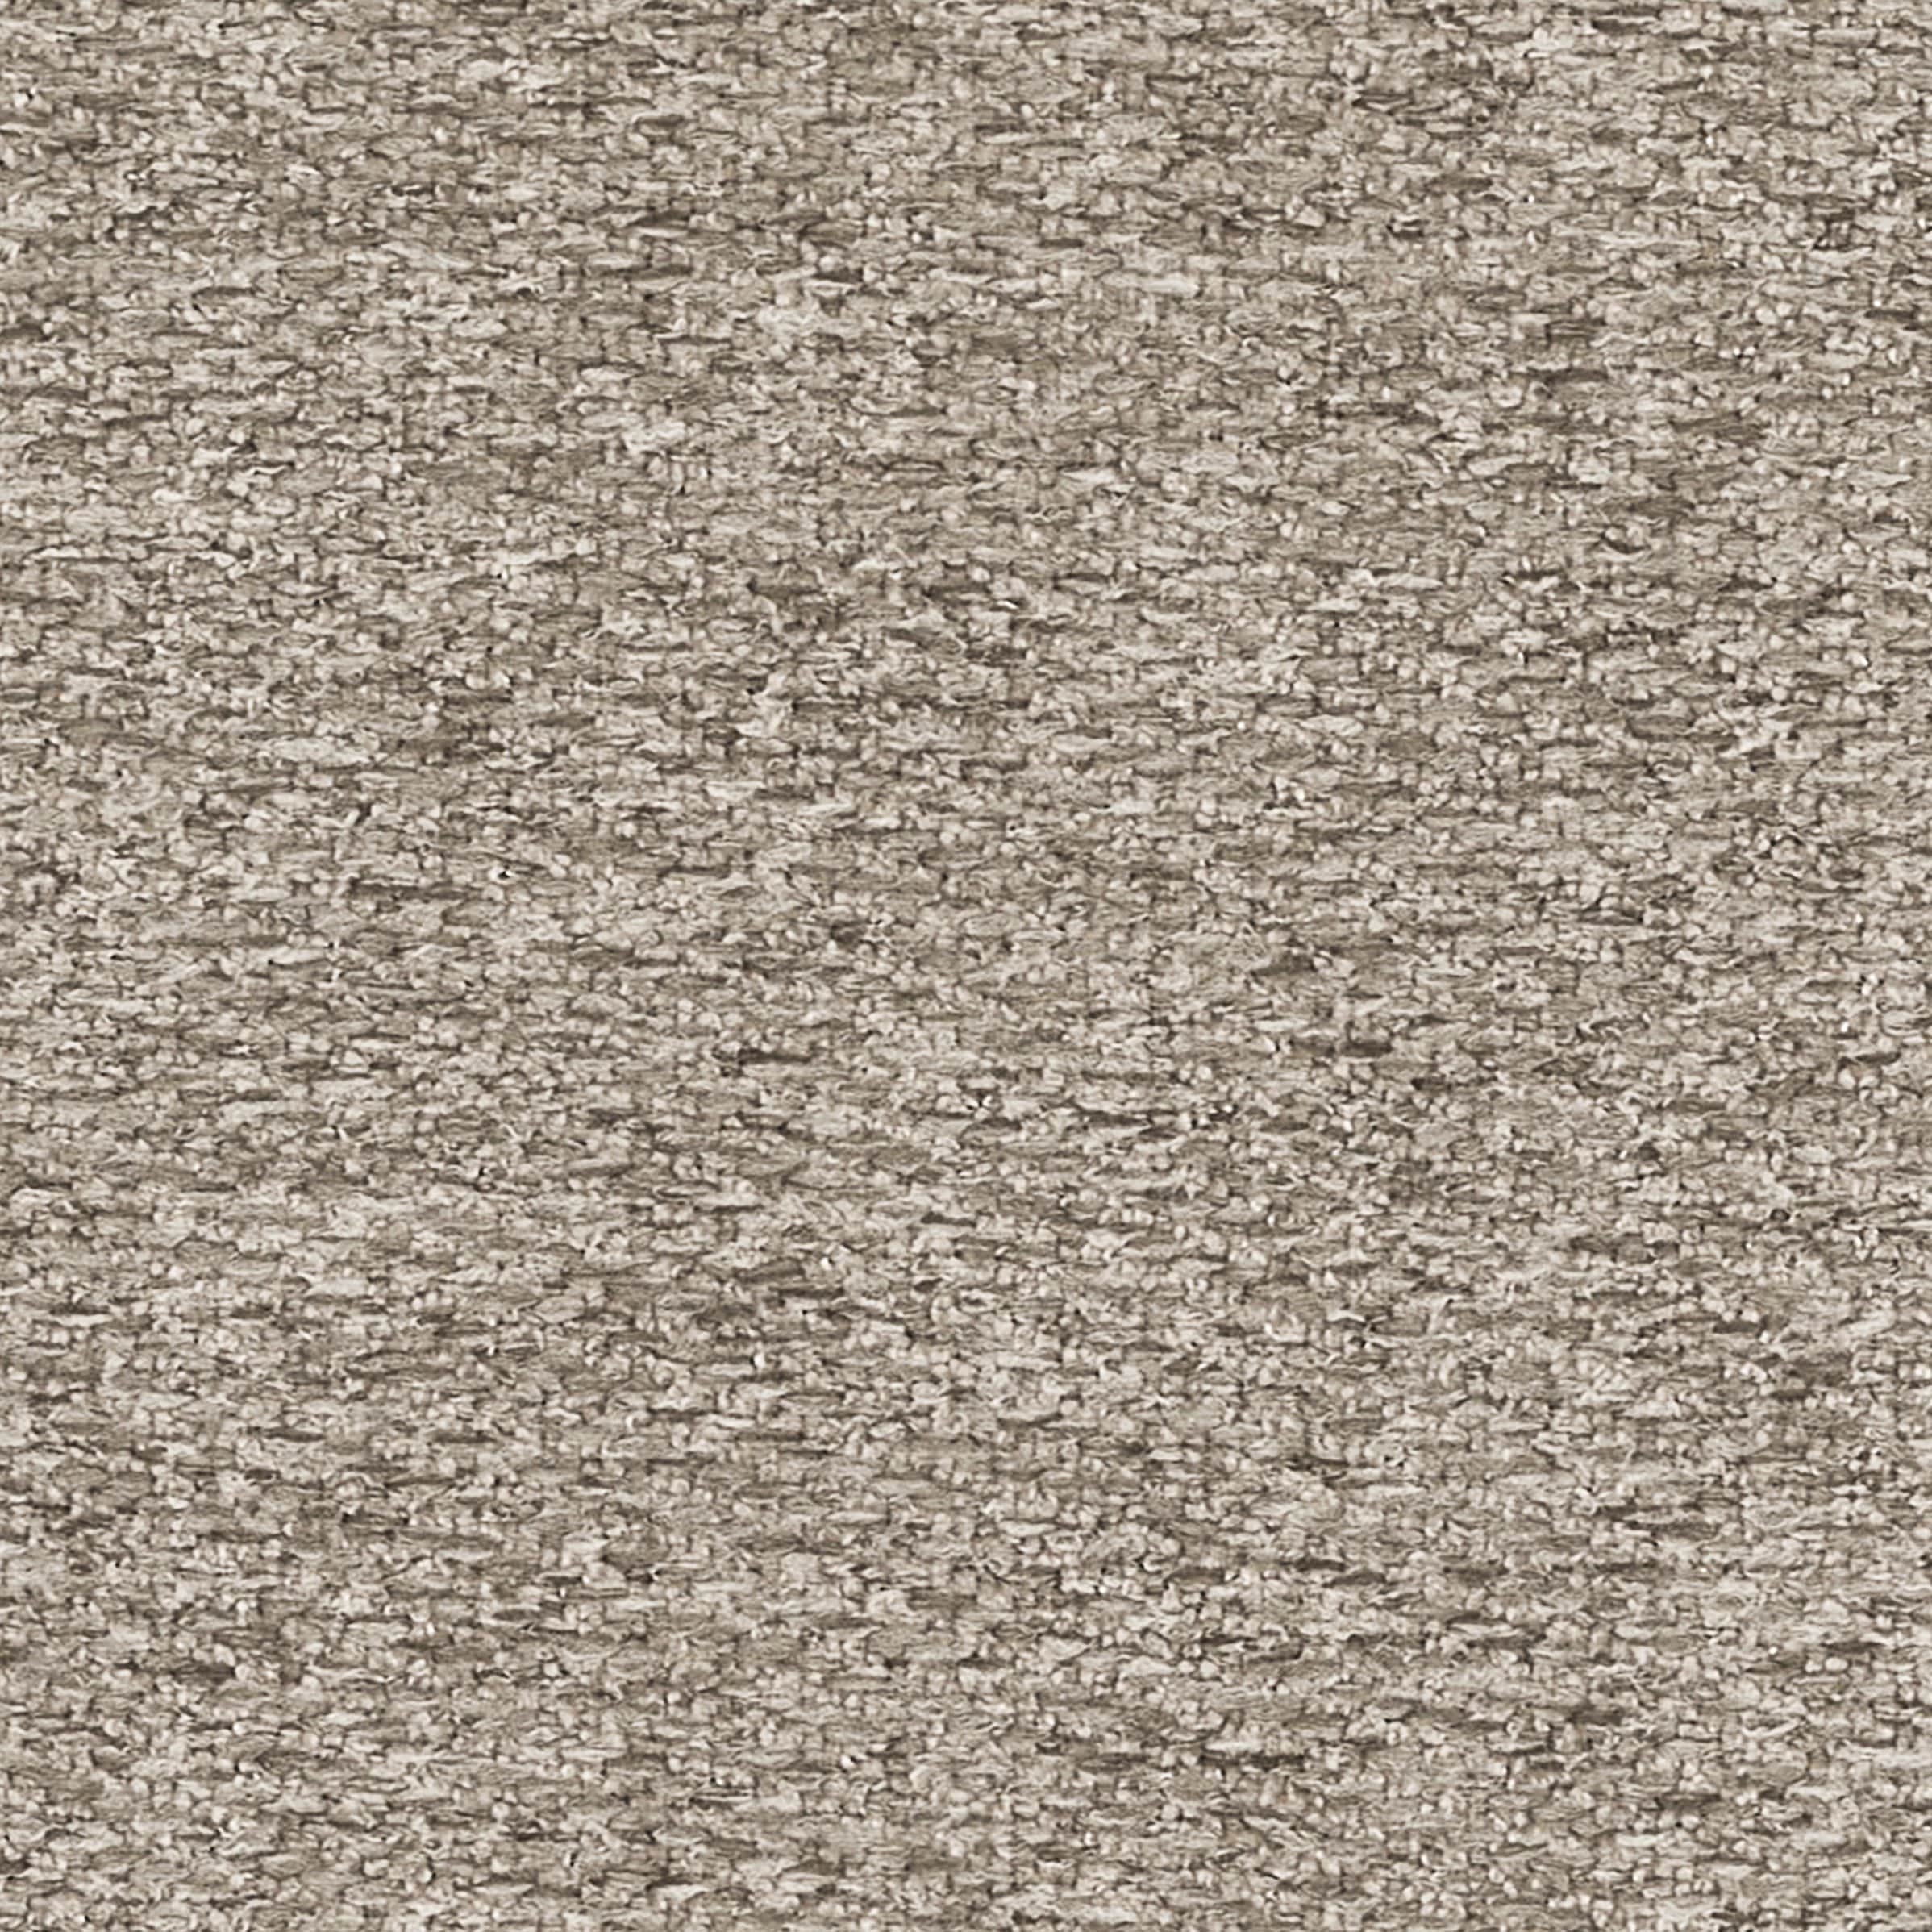 Taupe image